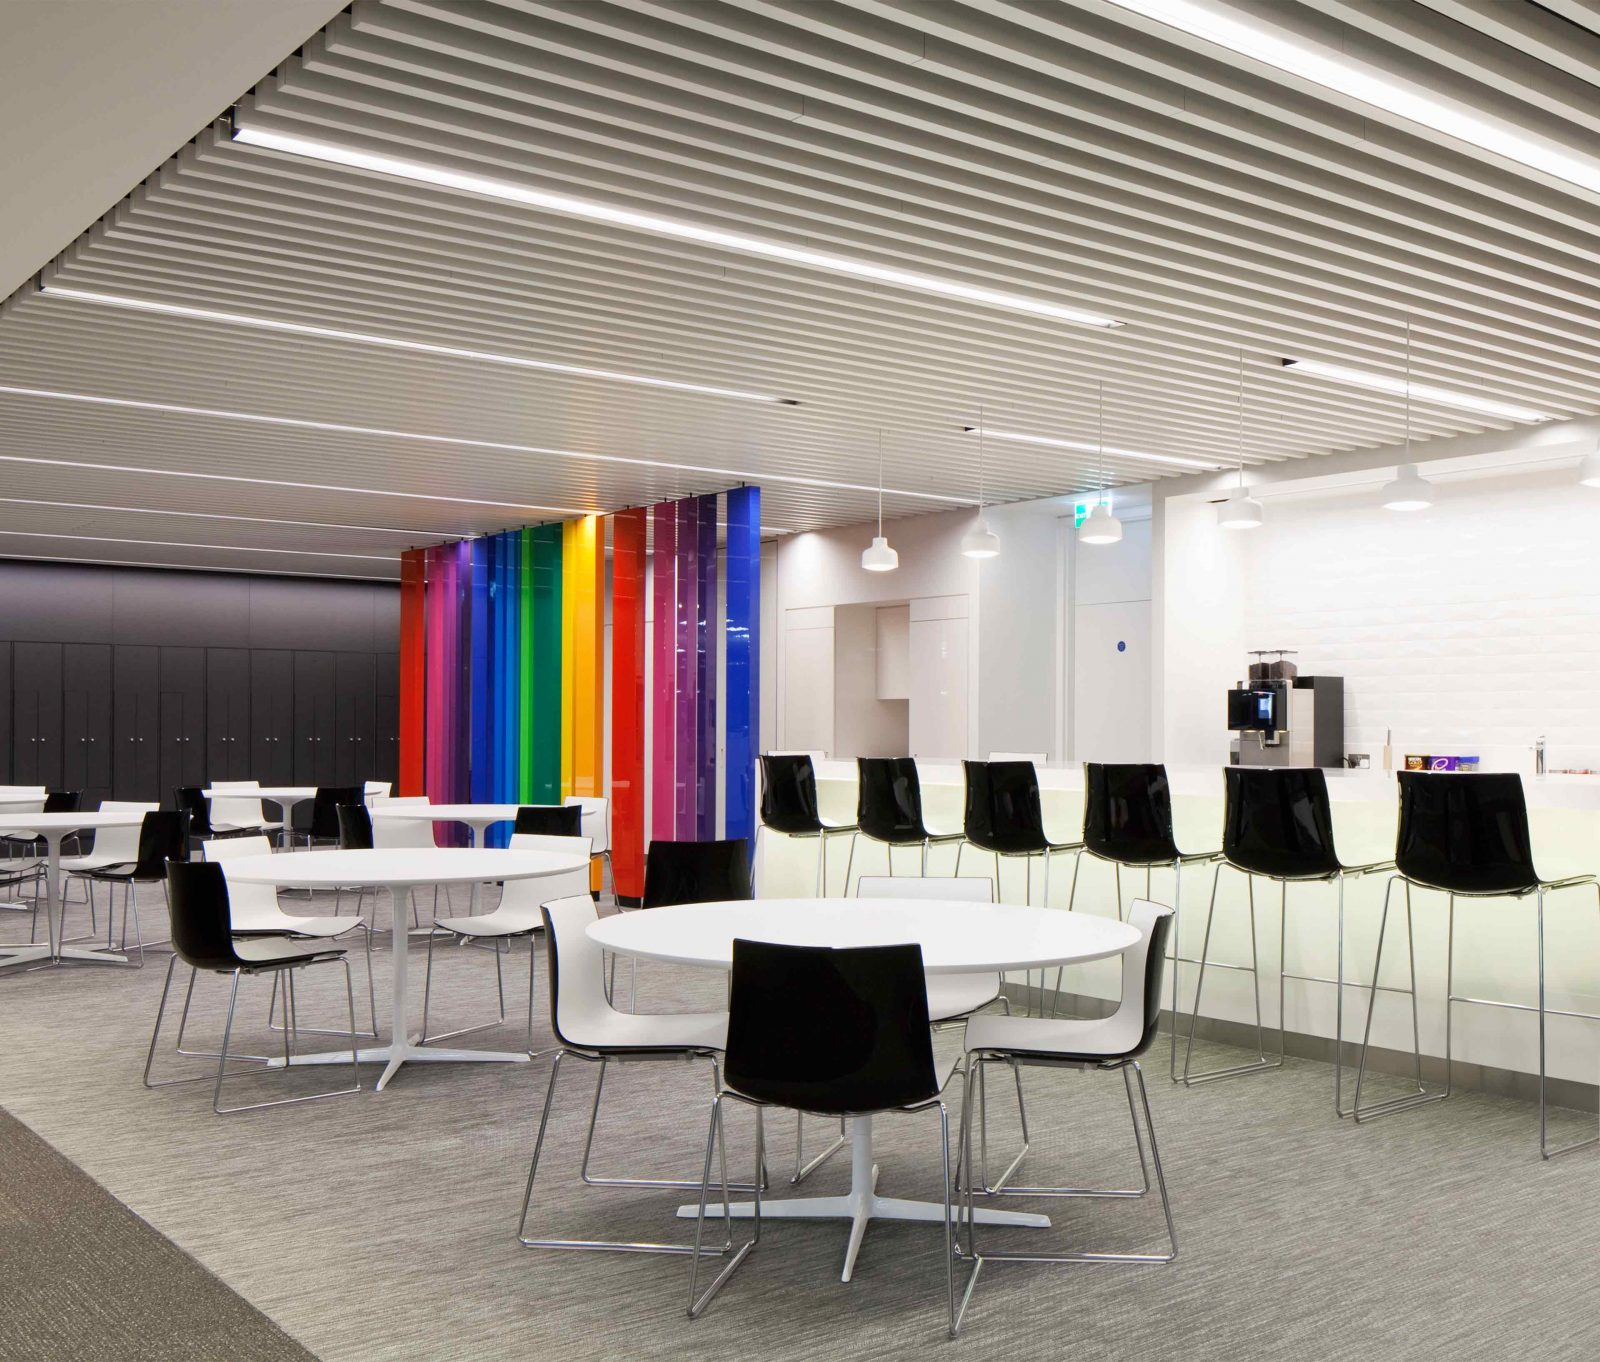 Commercial Office Breakout Area Minimal Interior Design Colourful Partition Lighting Studio N